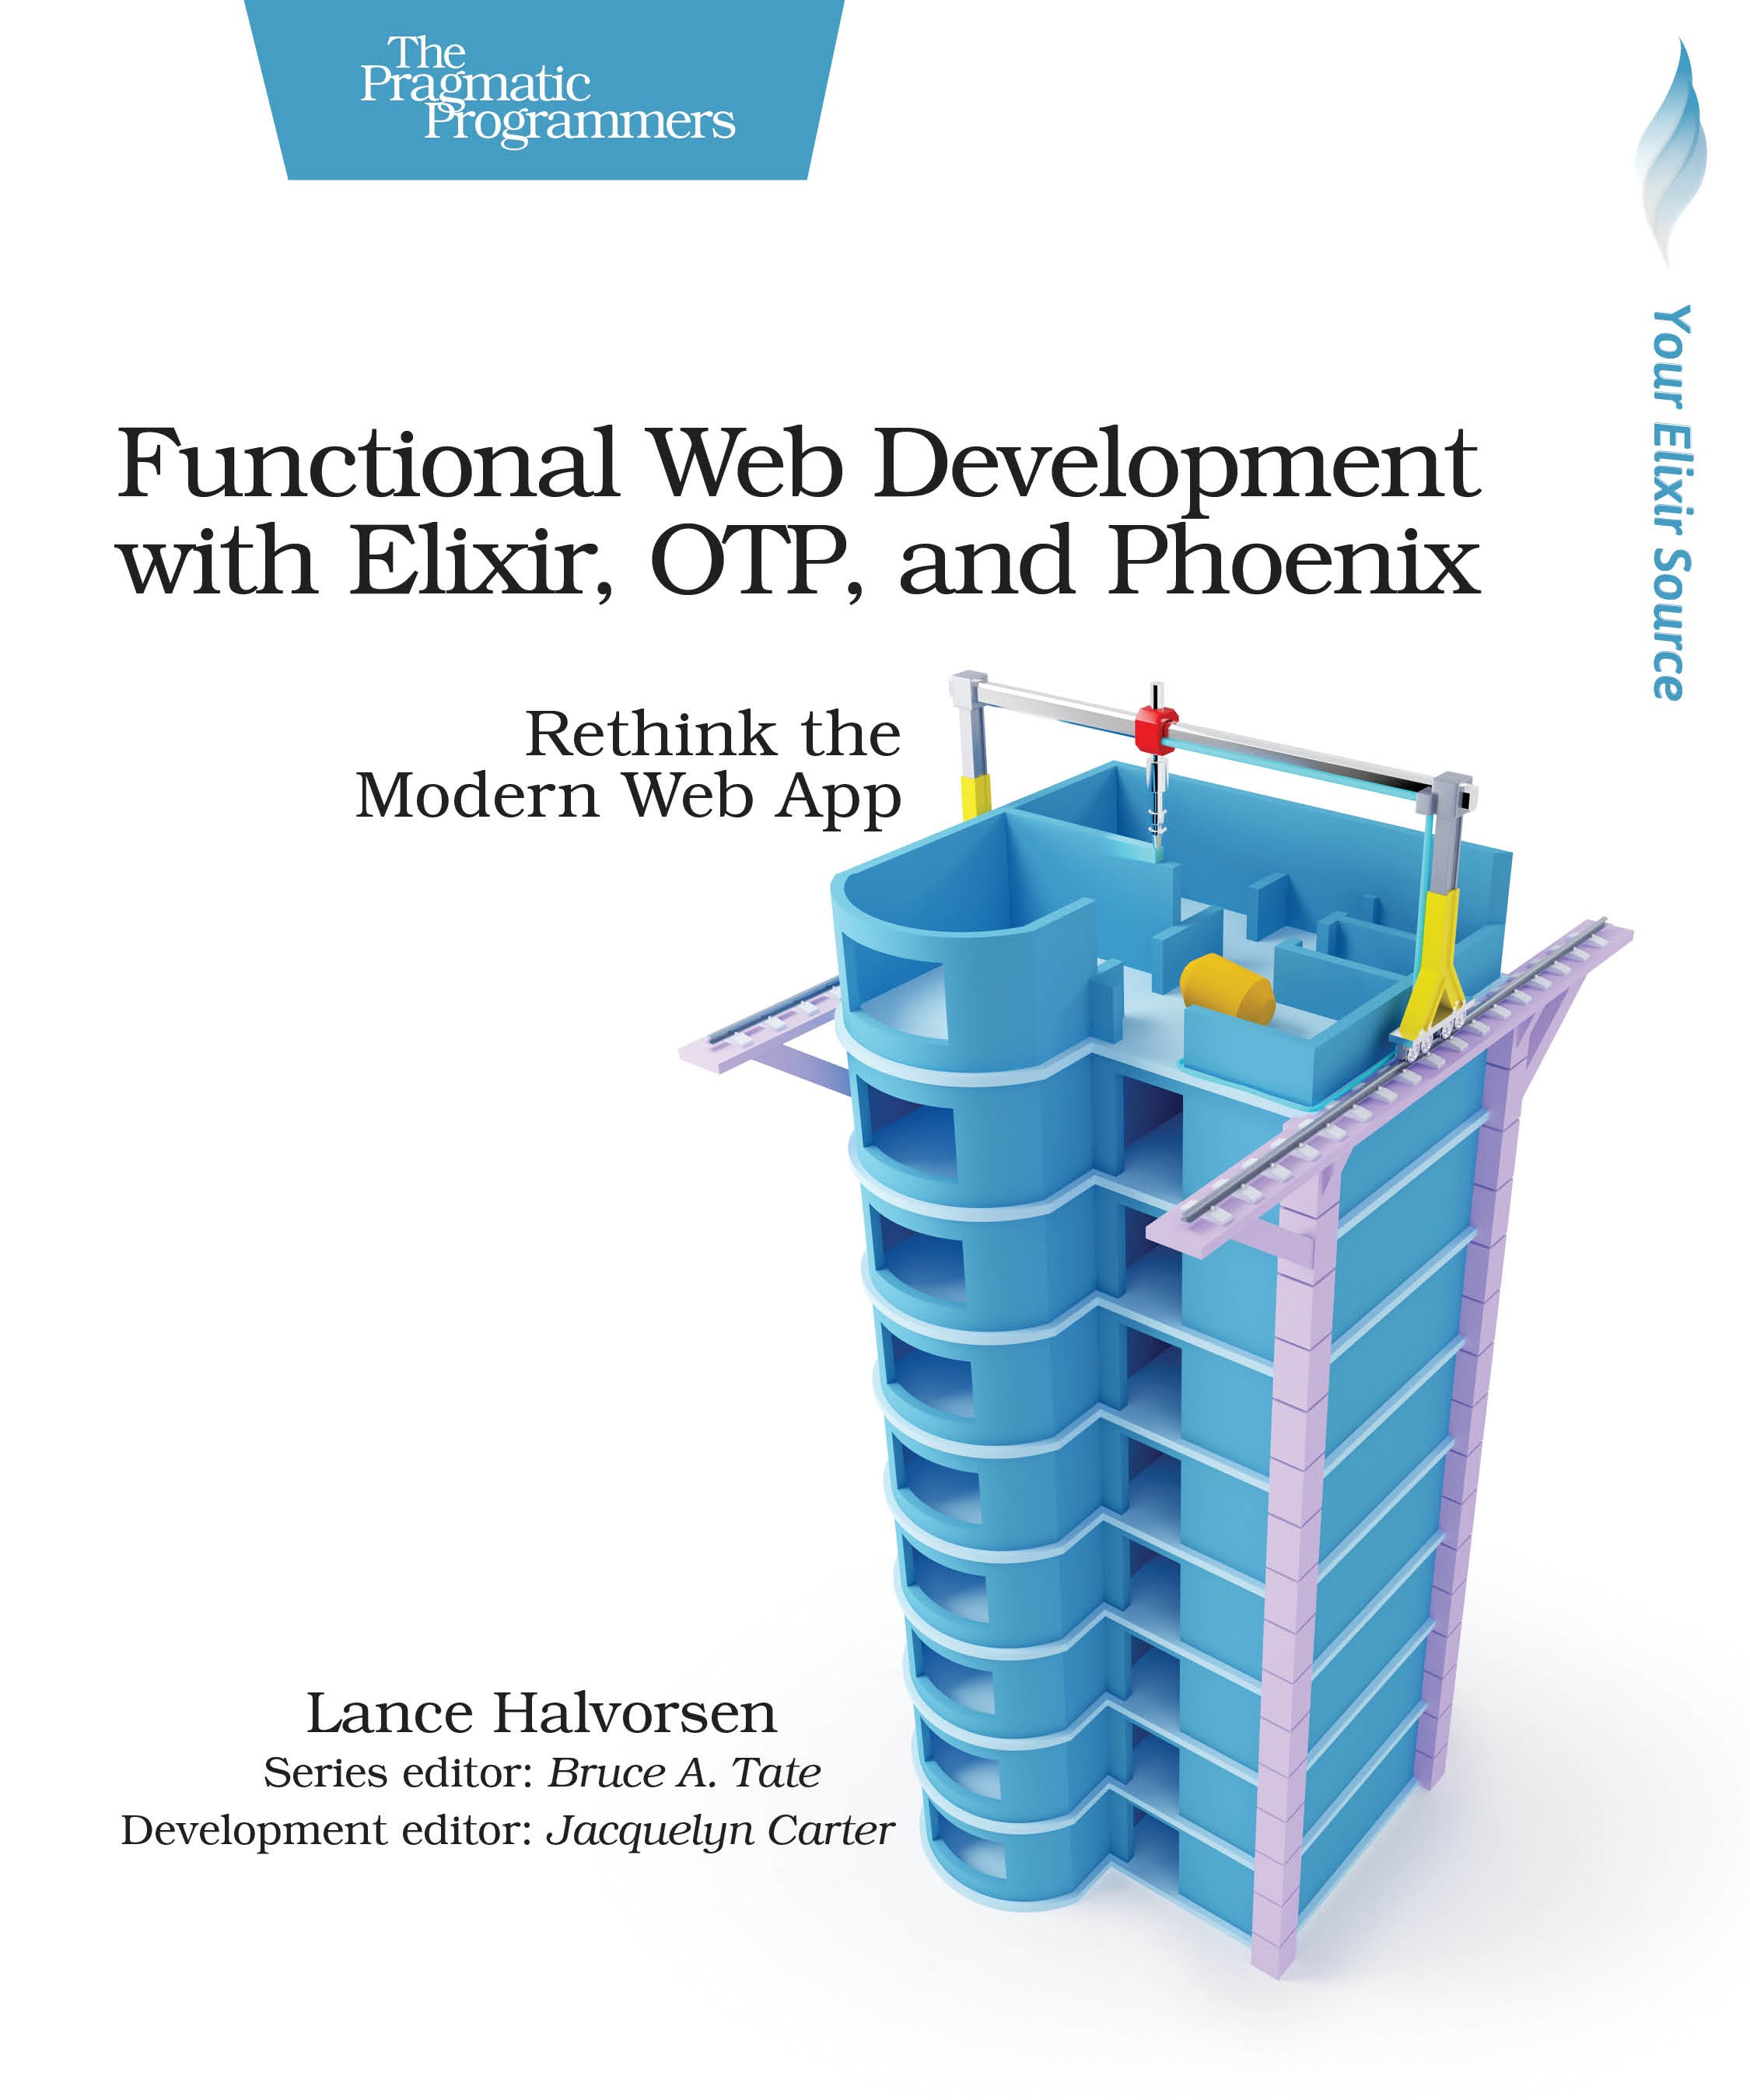 Functional Web Development with Elixir, OTP, and Phoenix — A